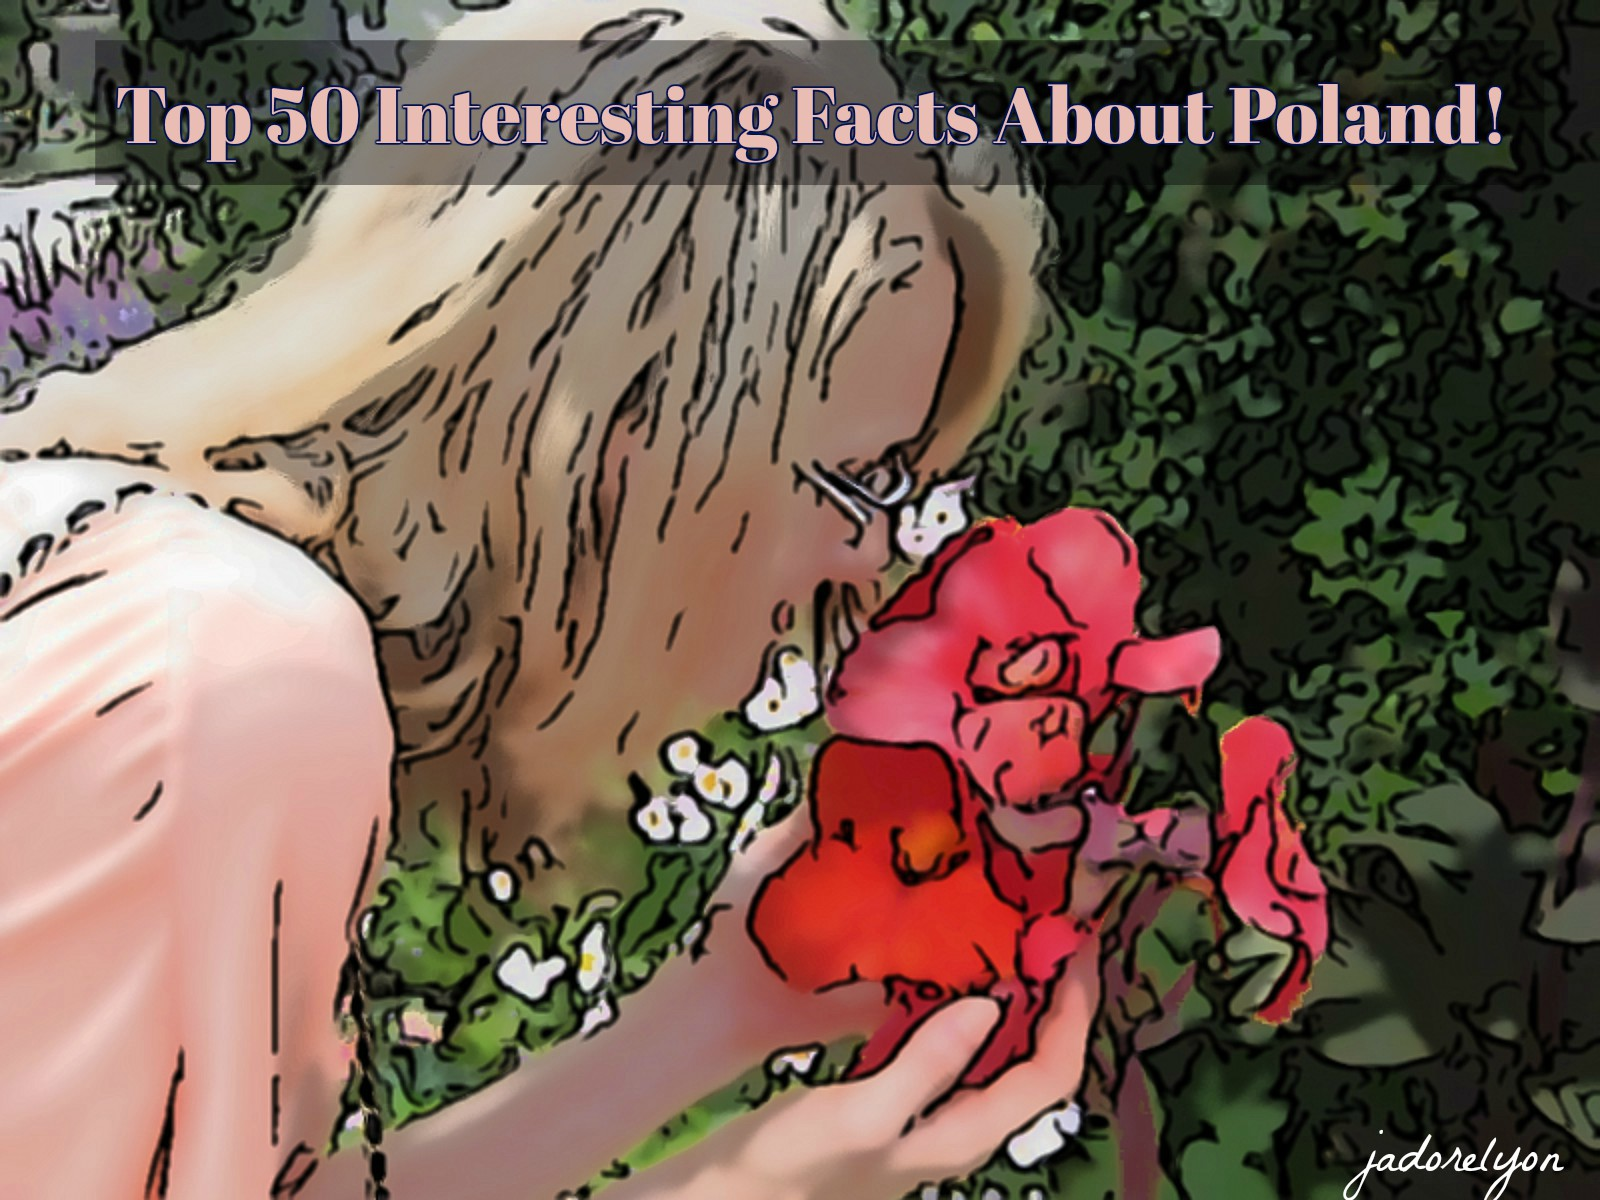 Top 50 Interesting Facts About Poland!1